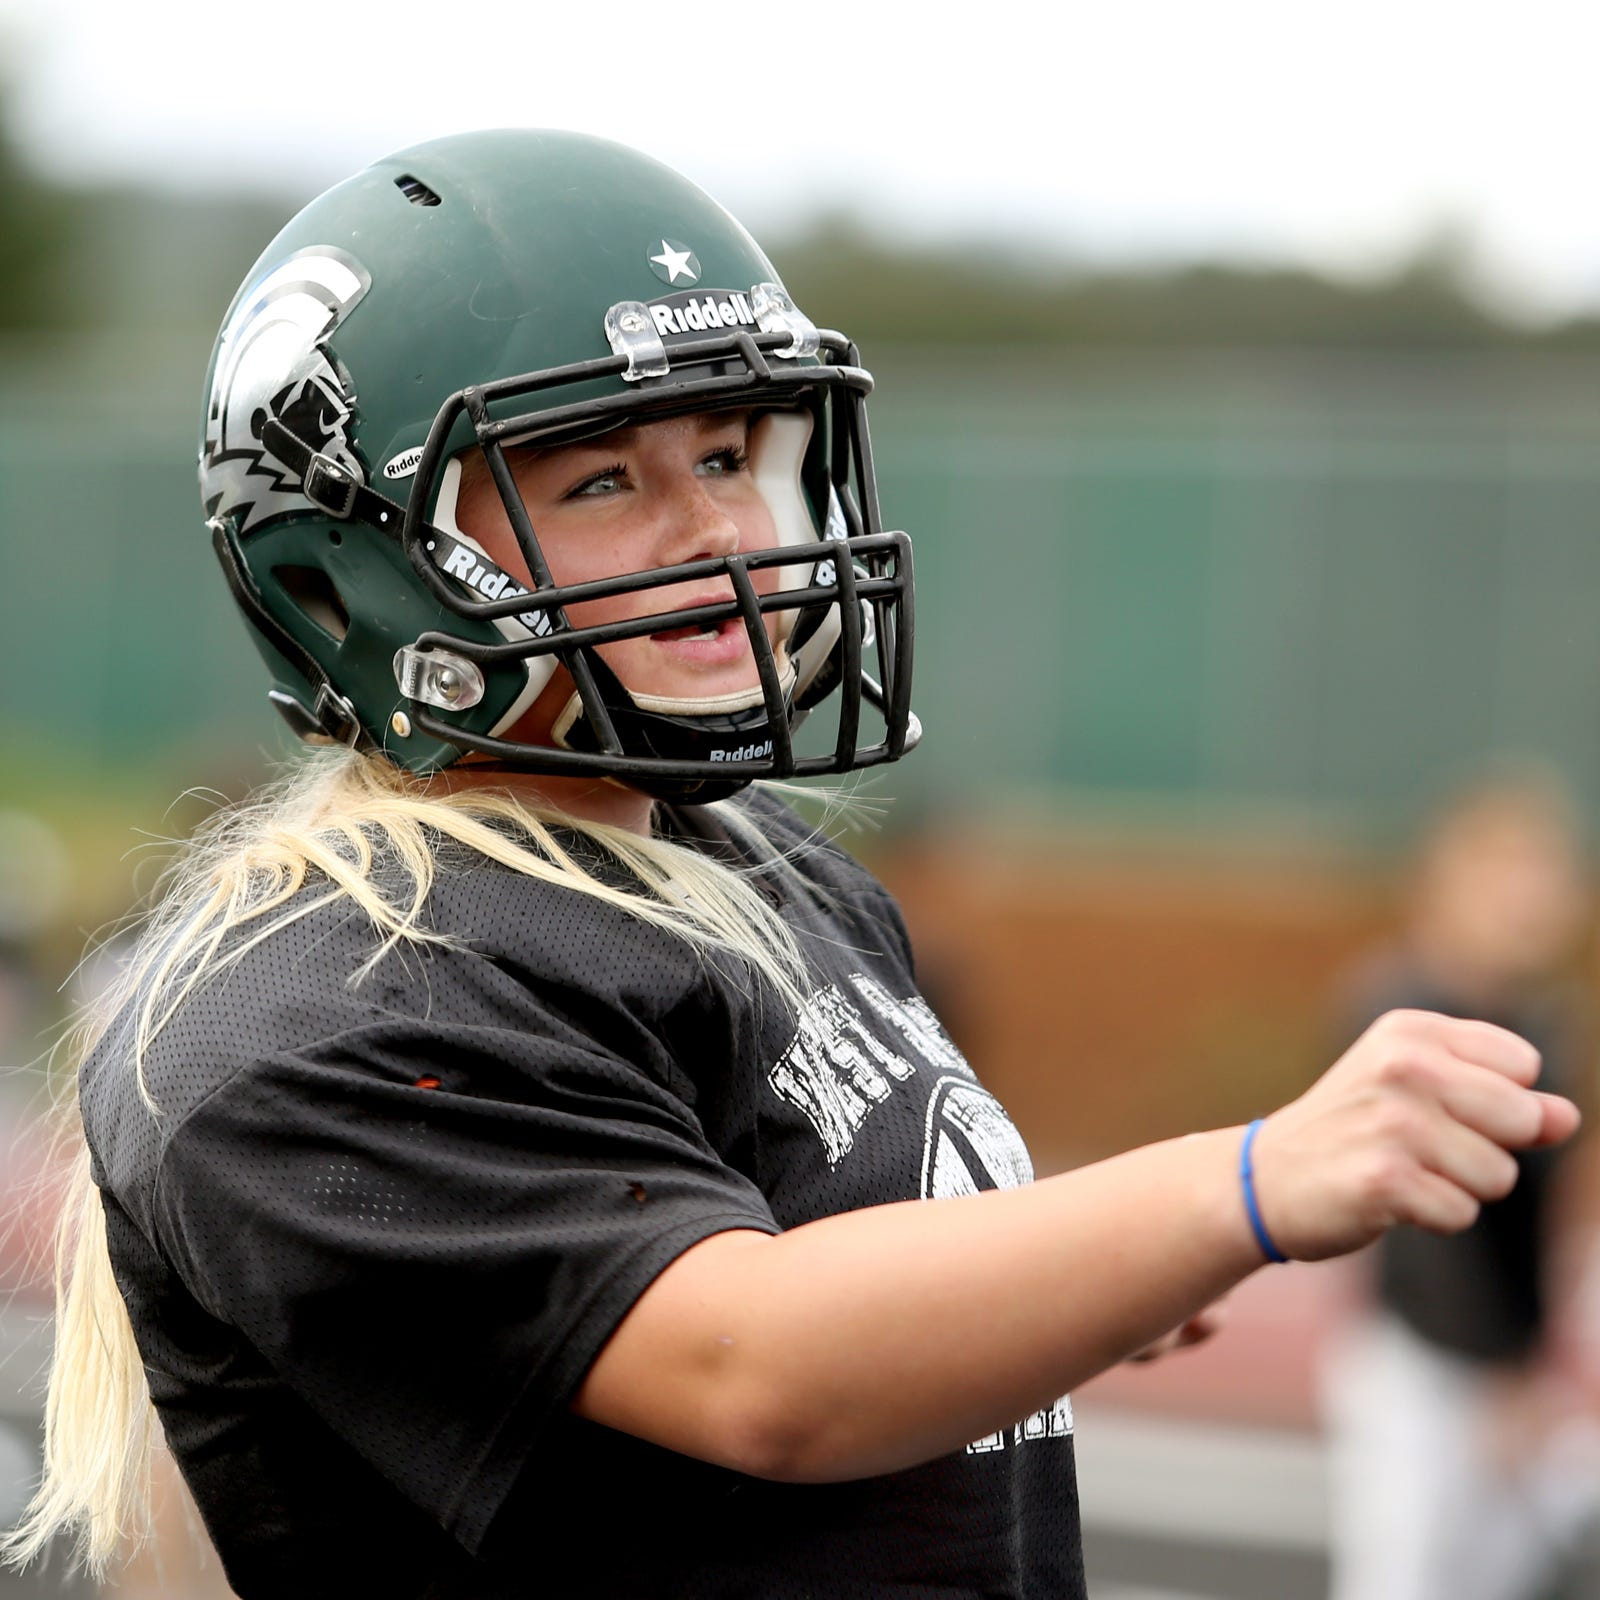 West Salem's Kyla Gordon ready to carry on Willamette University's female kicker tradition